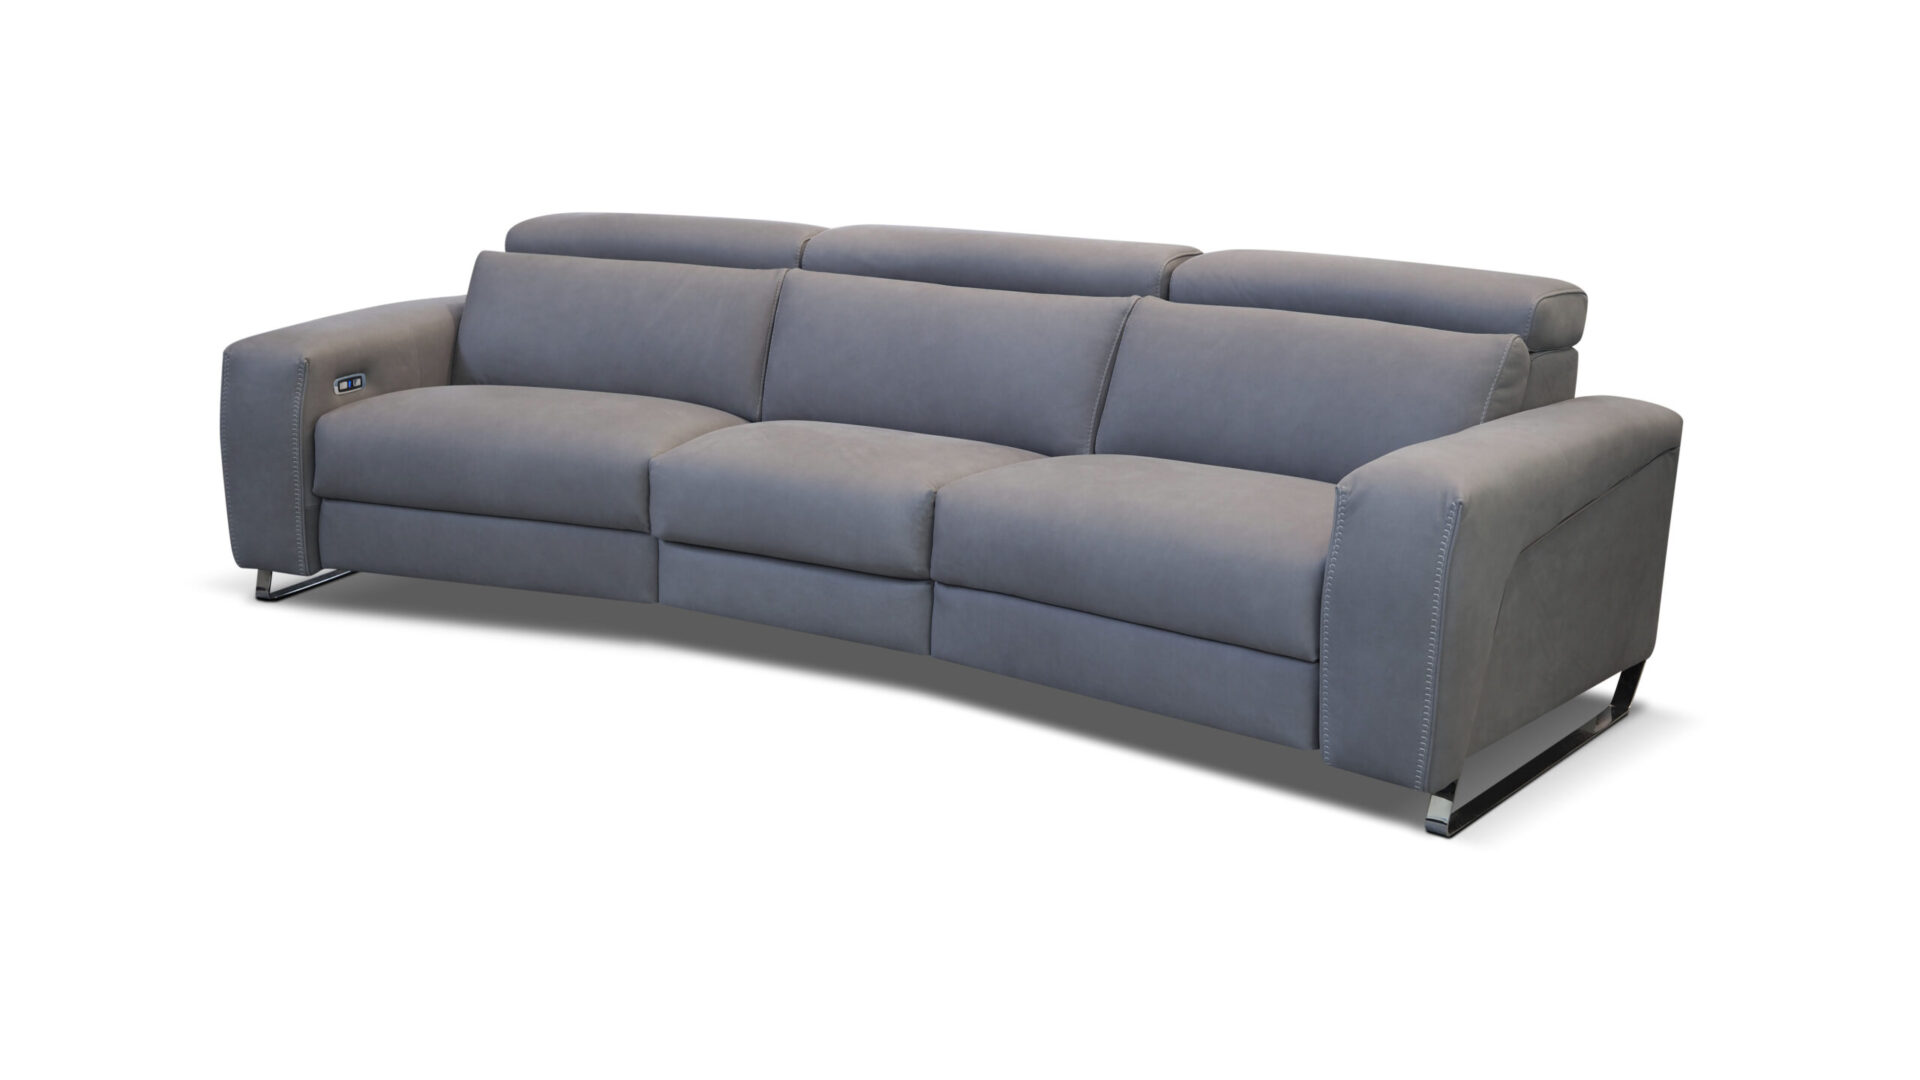 Vogue curved sectional